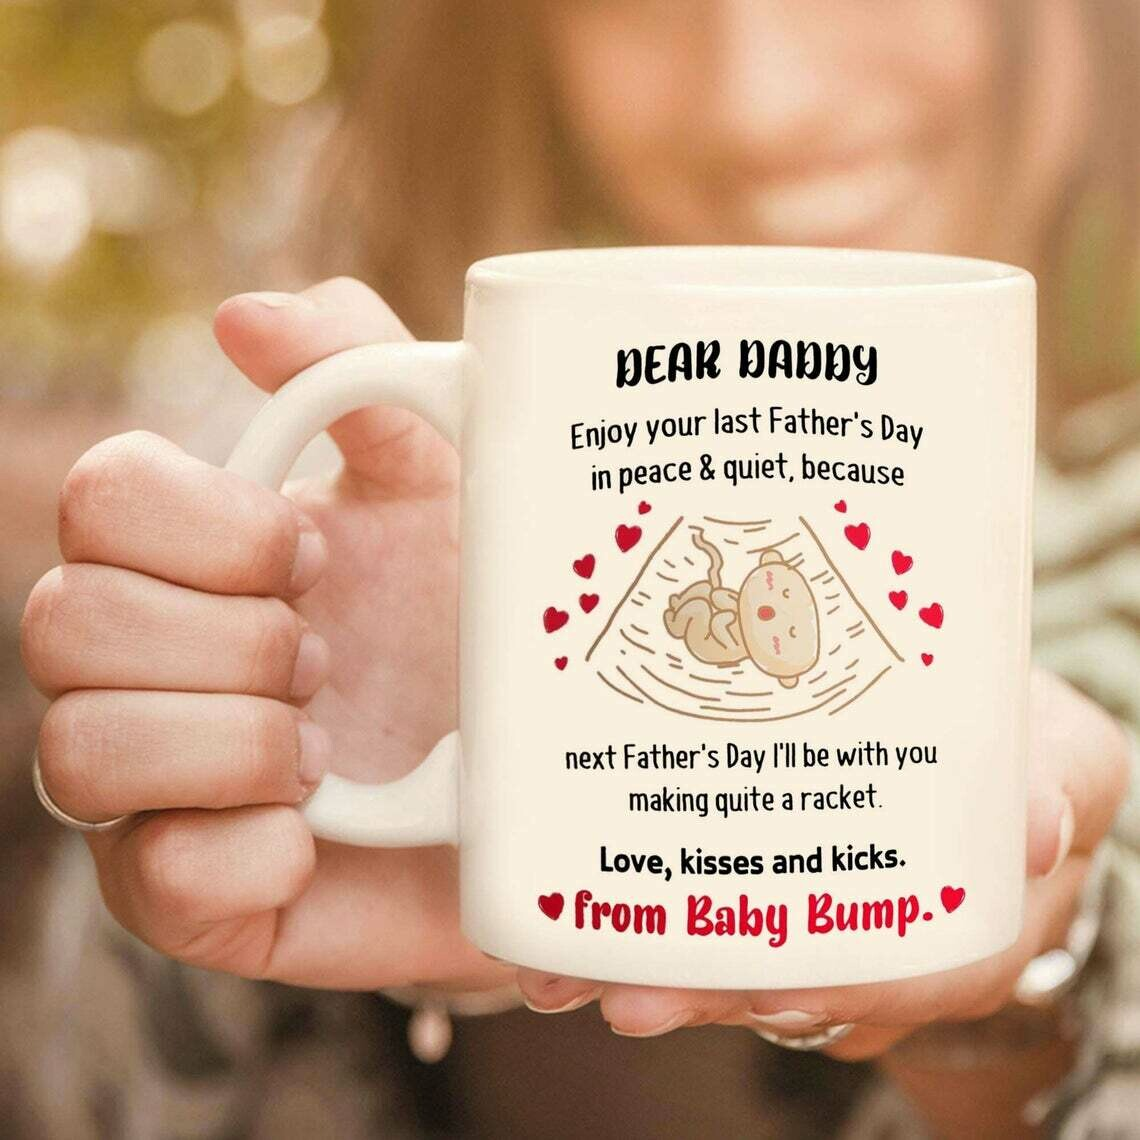 Dear Daddy Next Father Day I'll Be With You Mug, Snuggled Up In Tummy Mug, From Baby Bump Mug, Gift For Father, Best Gift Idea For Dad Coffee Mug